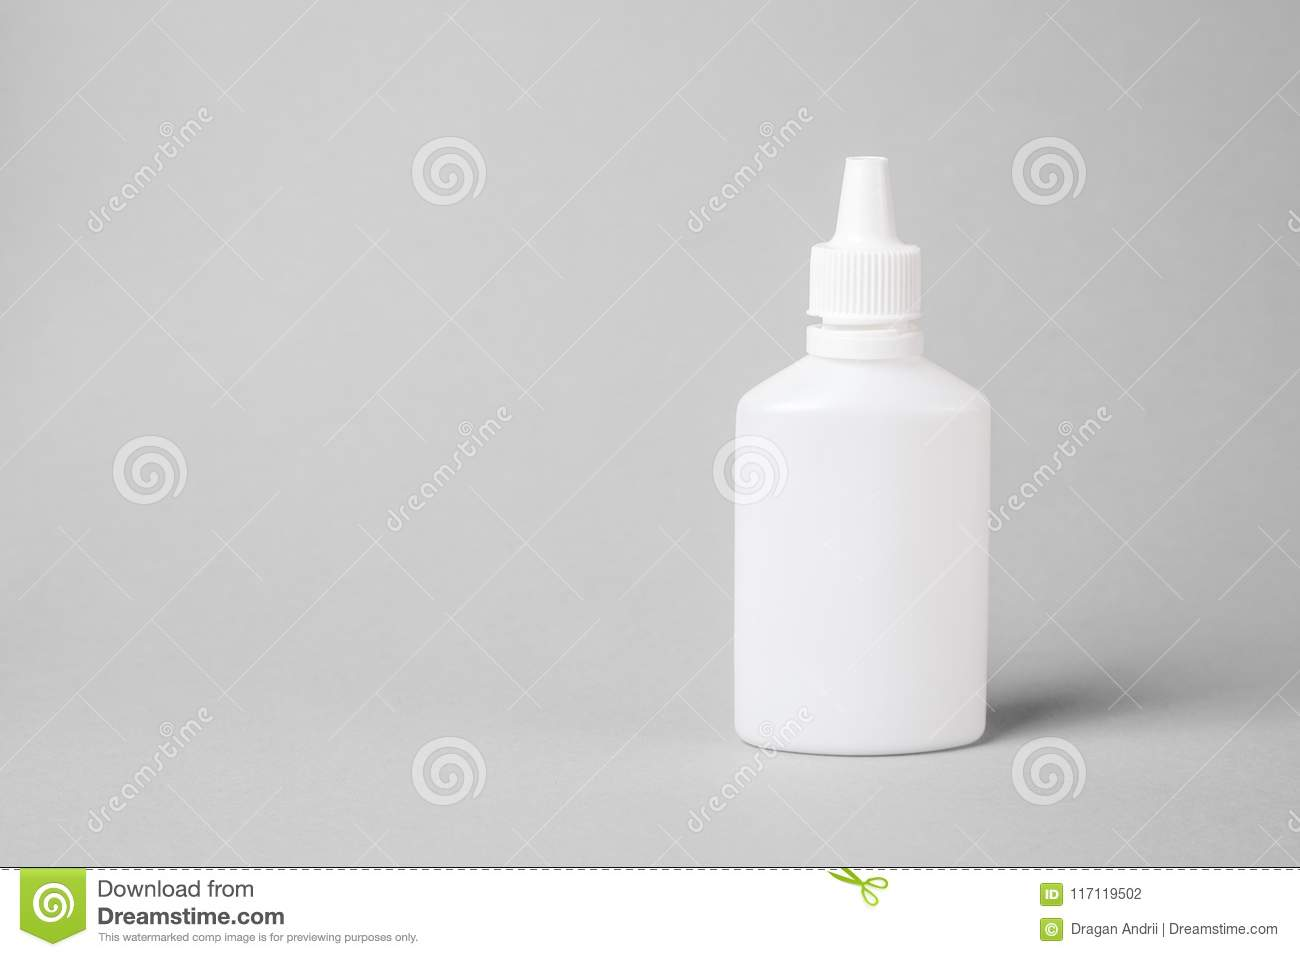 Spray for the nose in a white plastic bottle on a gray background. Aerosol from the common cold or allergy